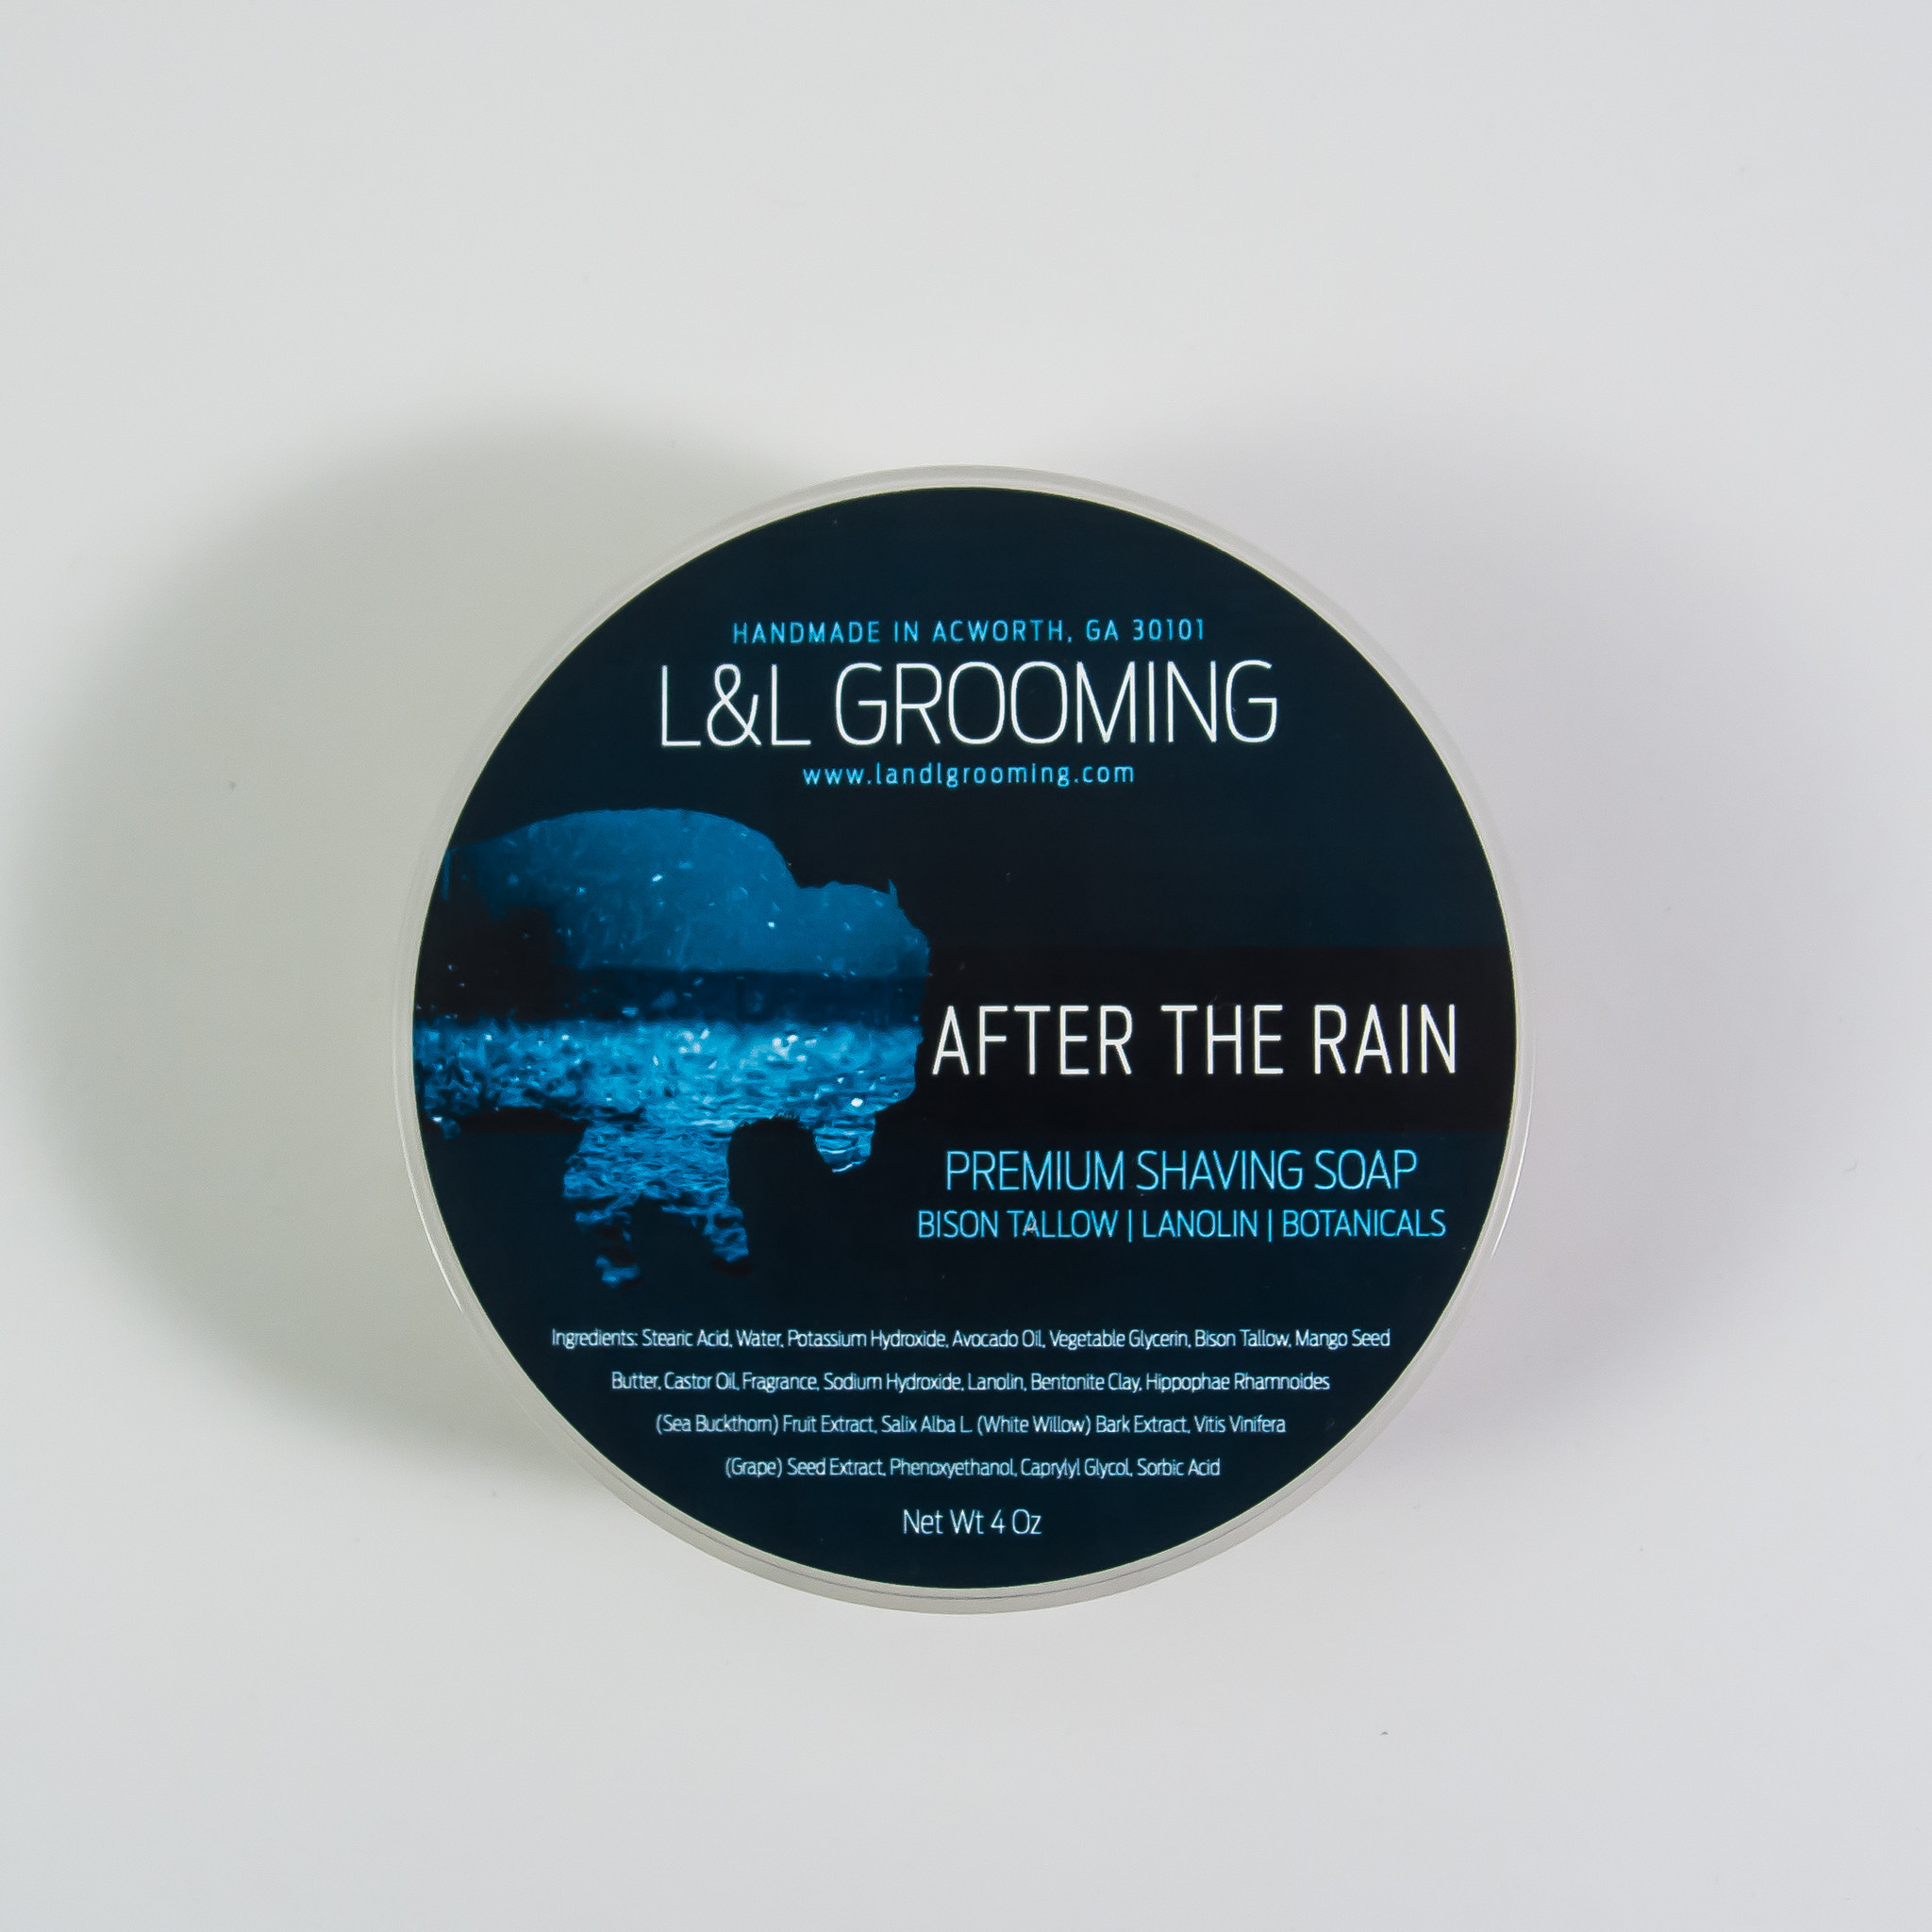 Declaration Grooming - After the Rain - Soap image